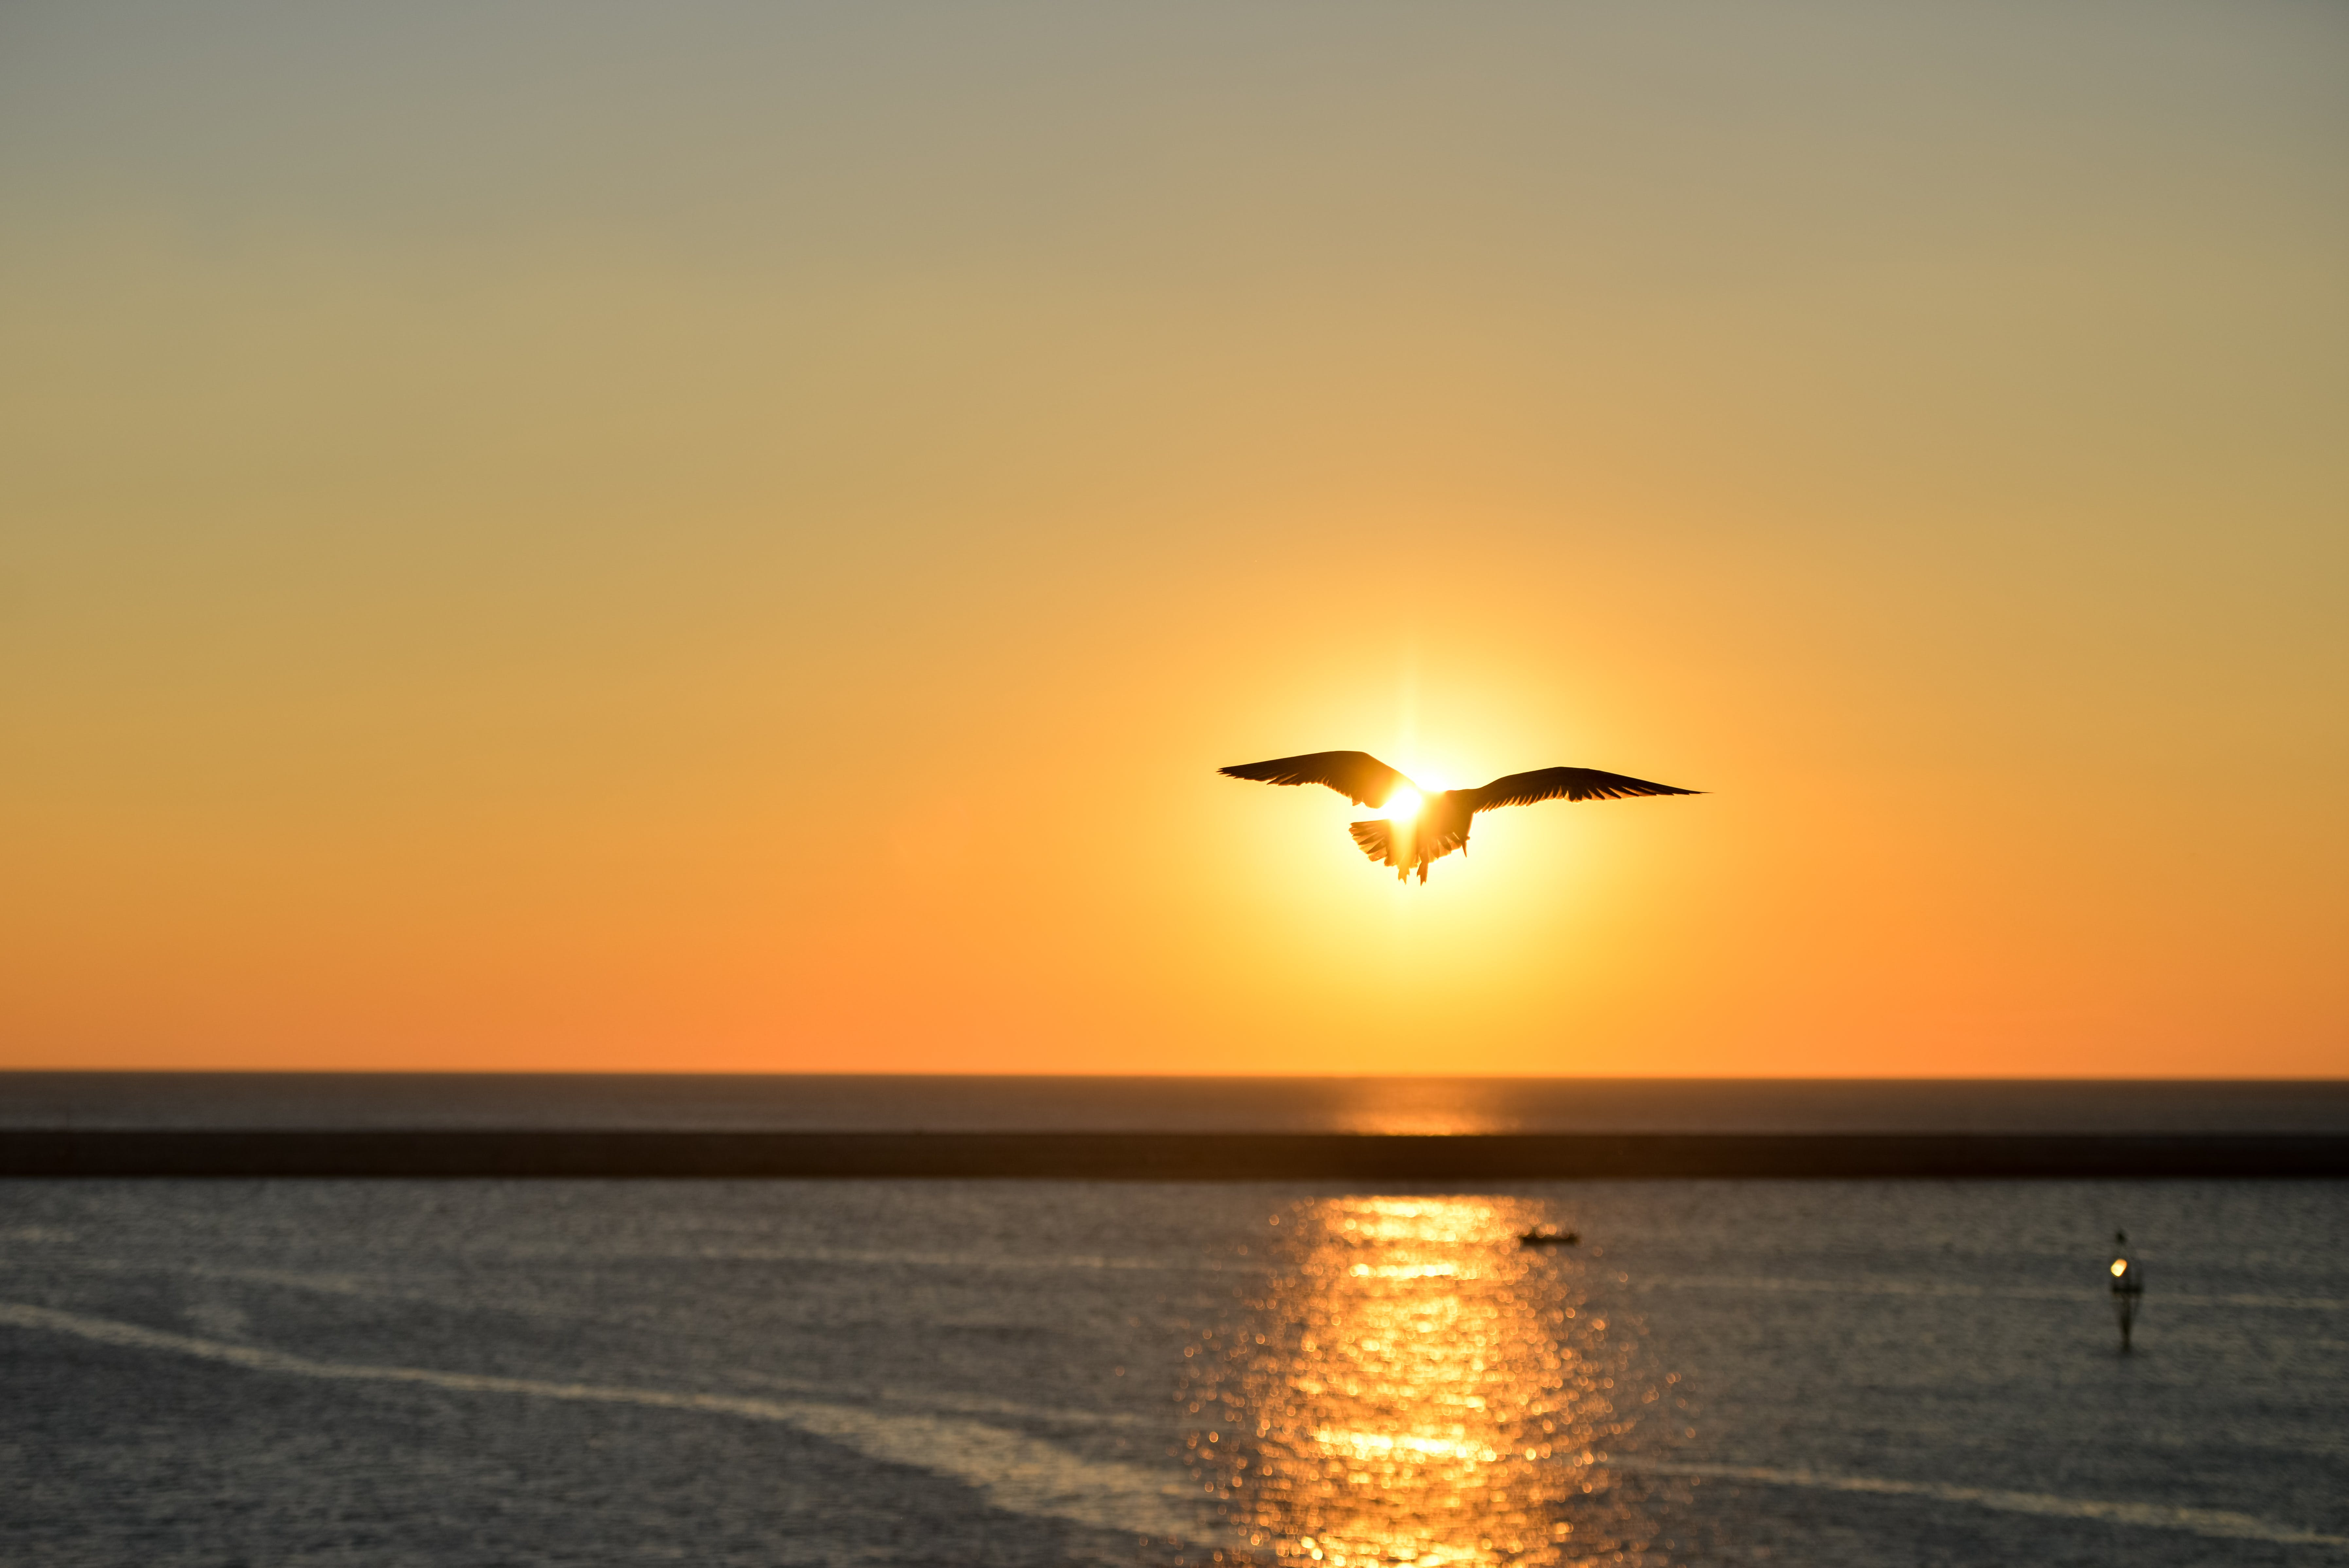 Silhouette of Seagull Flying Above Large Body of Water during Sunset